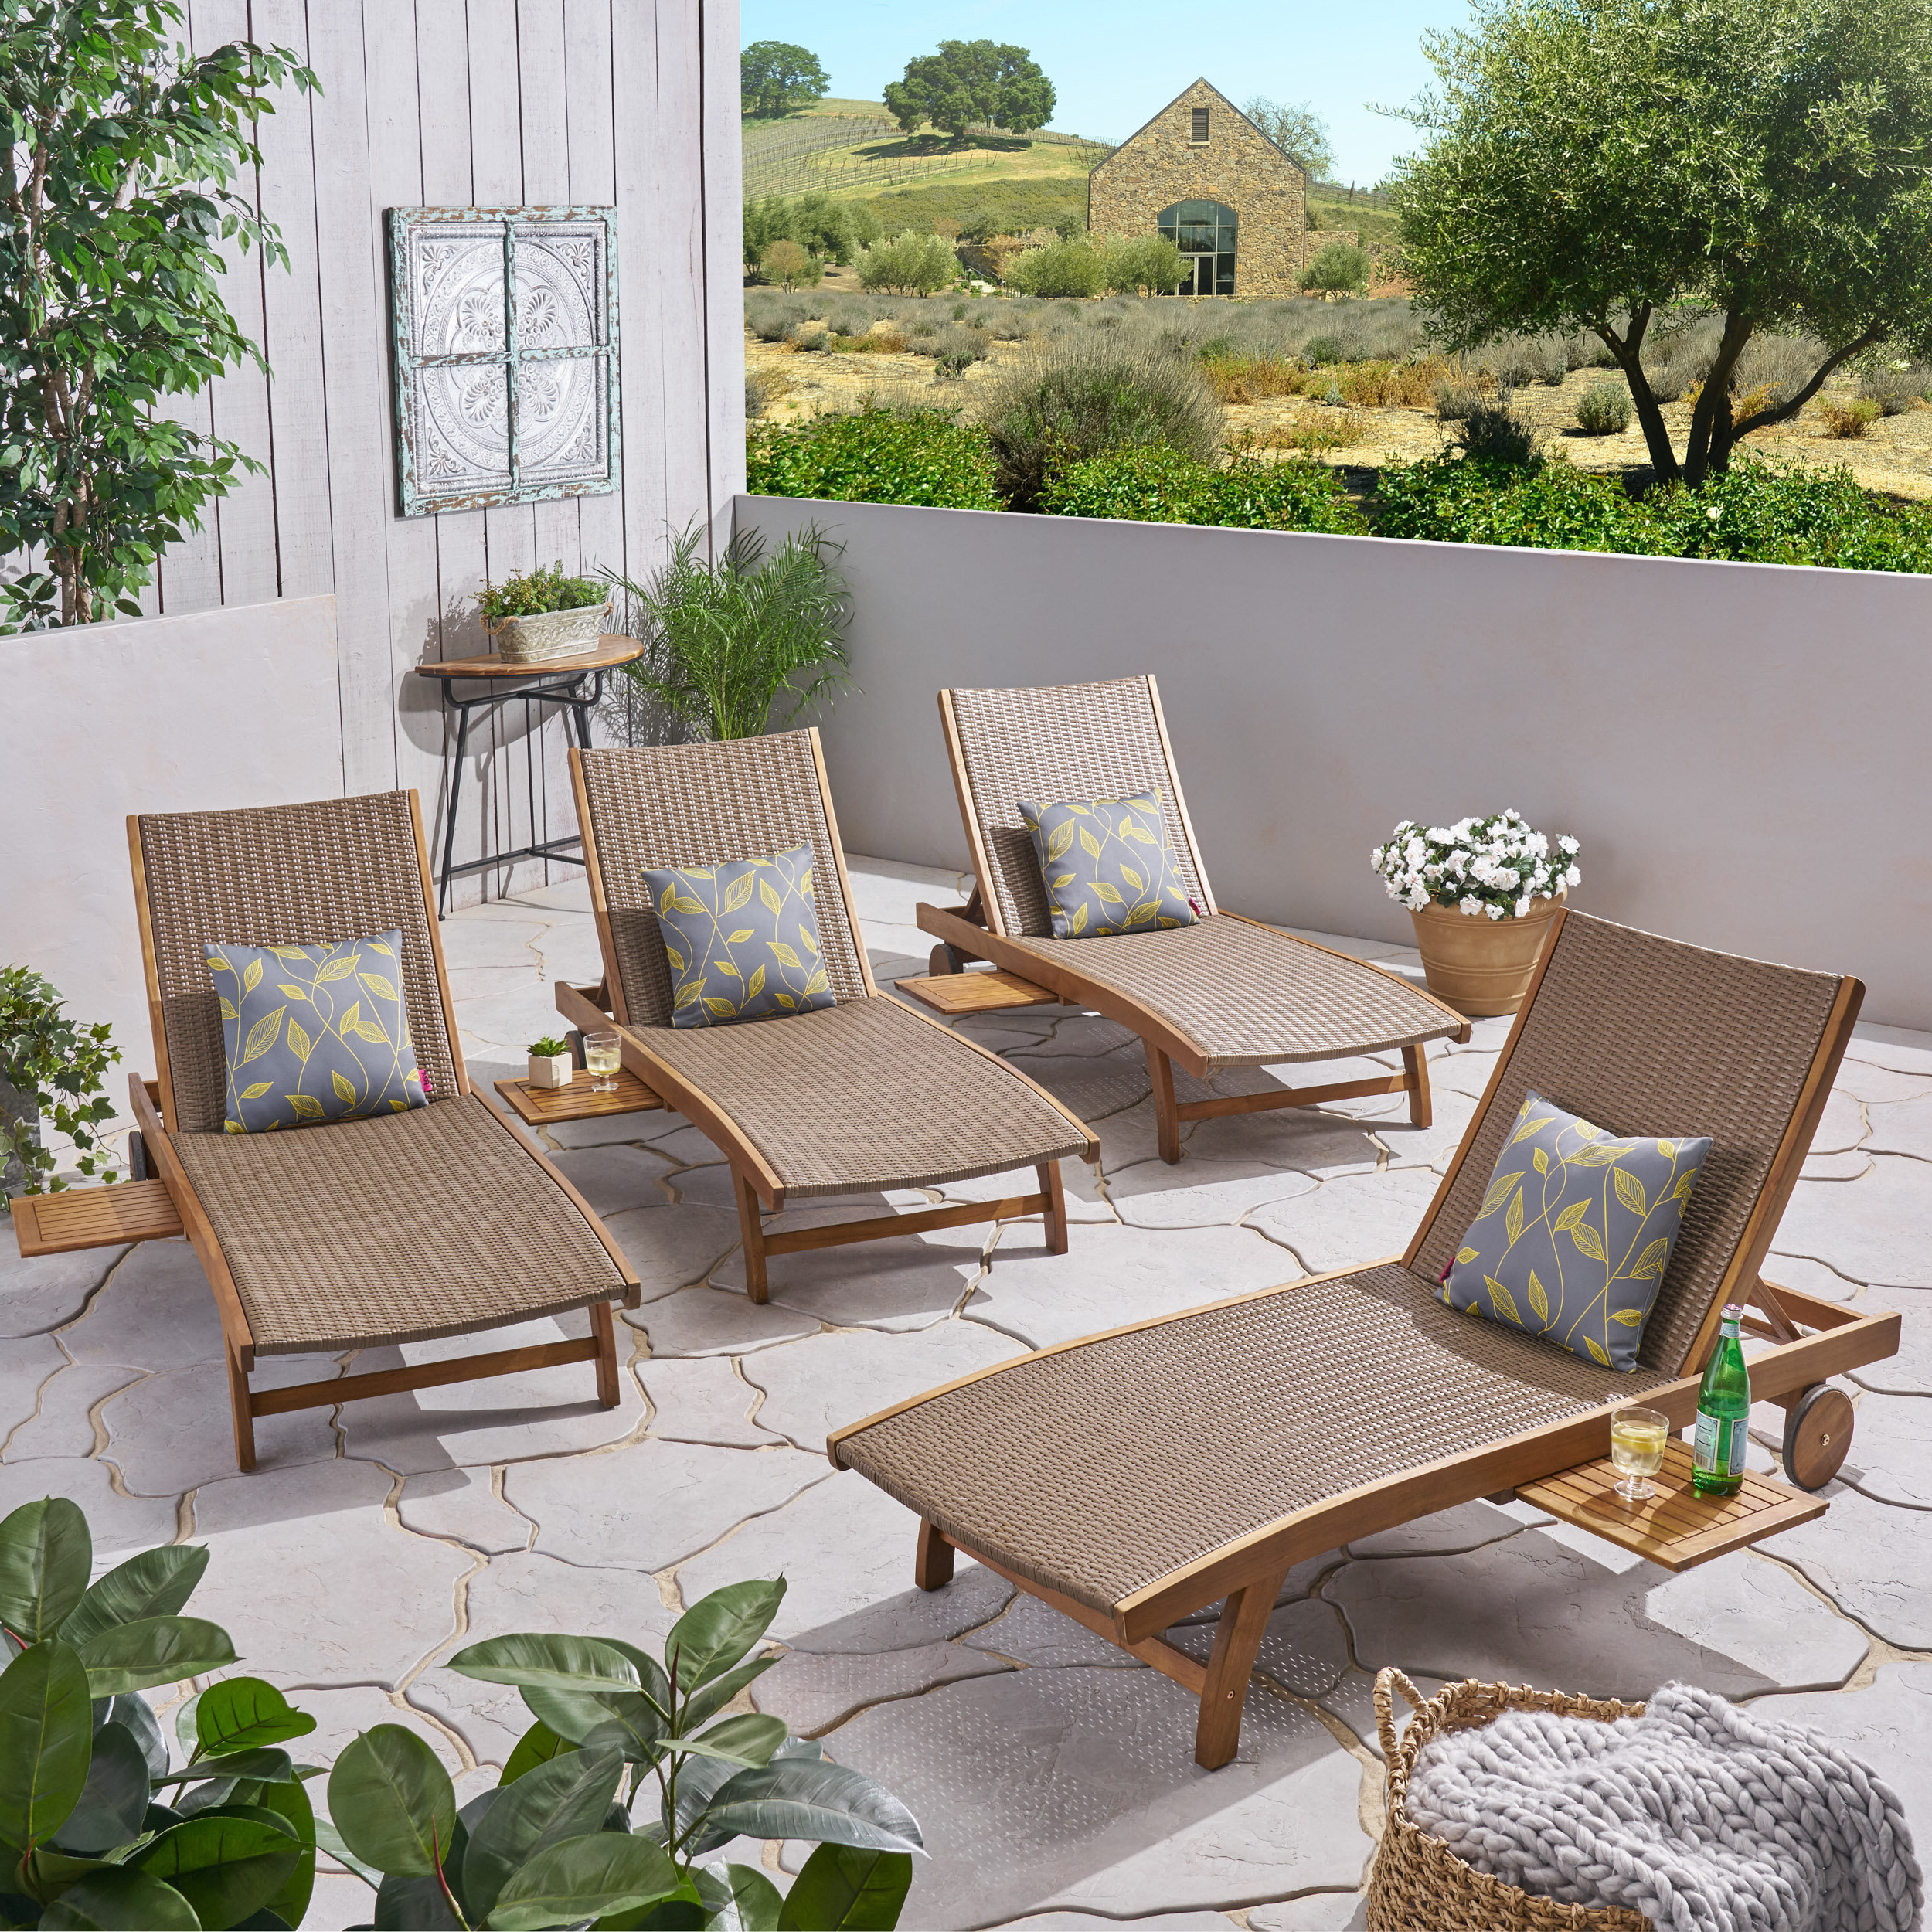 Outdoor Rustic Acacia Wood Chaise Lounges With Wicker Seat In Latest Cleghorn Reclining Chaise Lounge (View 9 of 25)